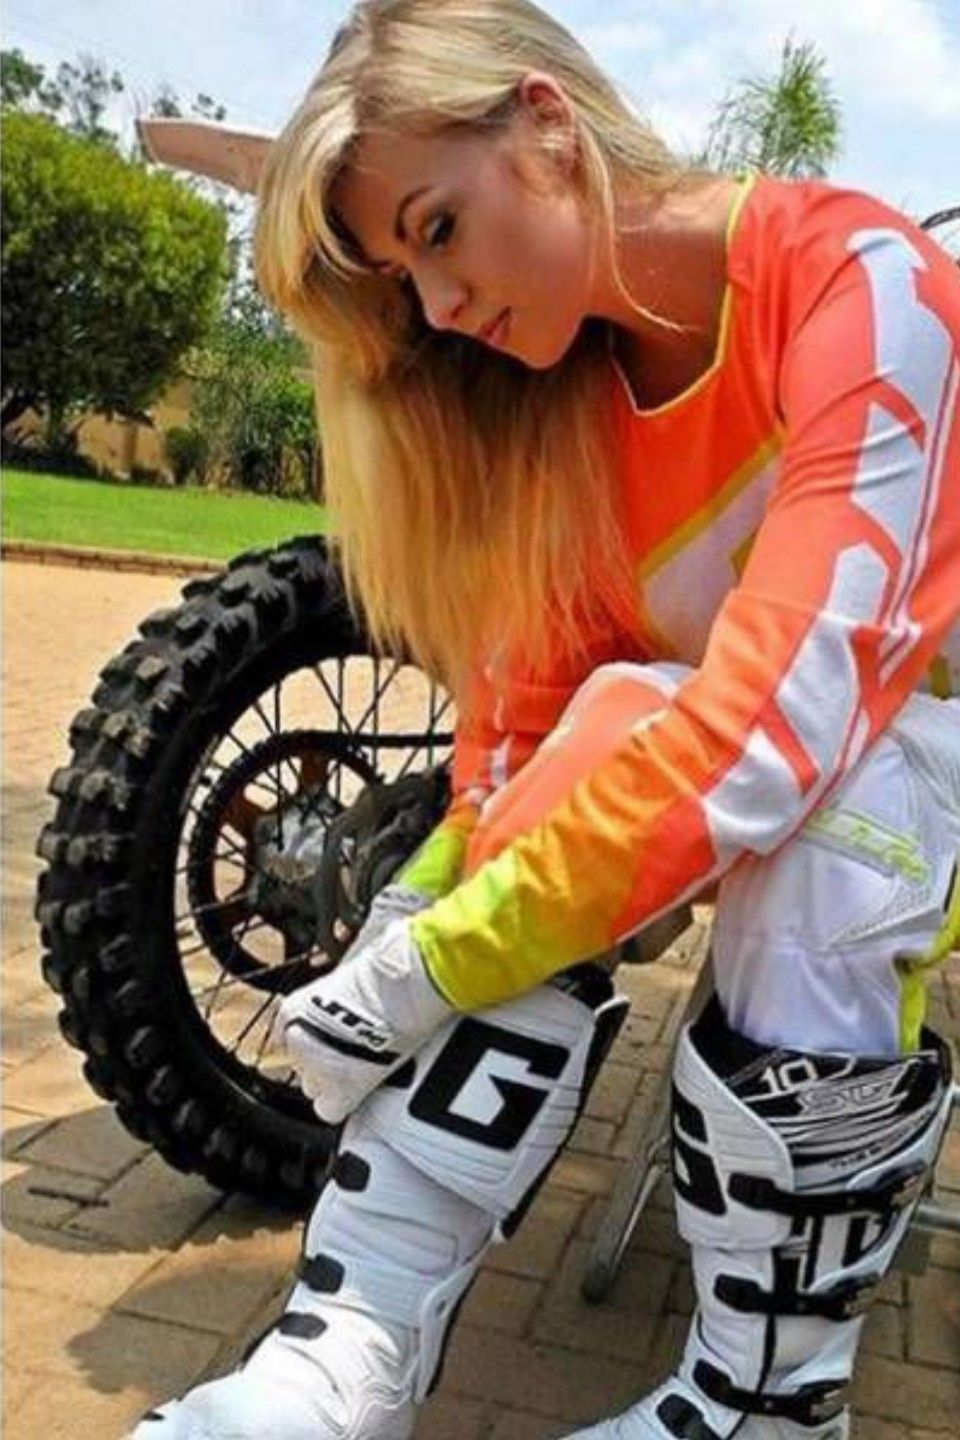 Beautiful girls and dirty bikes make for hot compilation videos